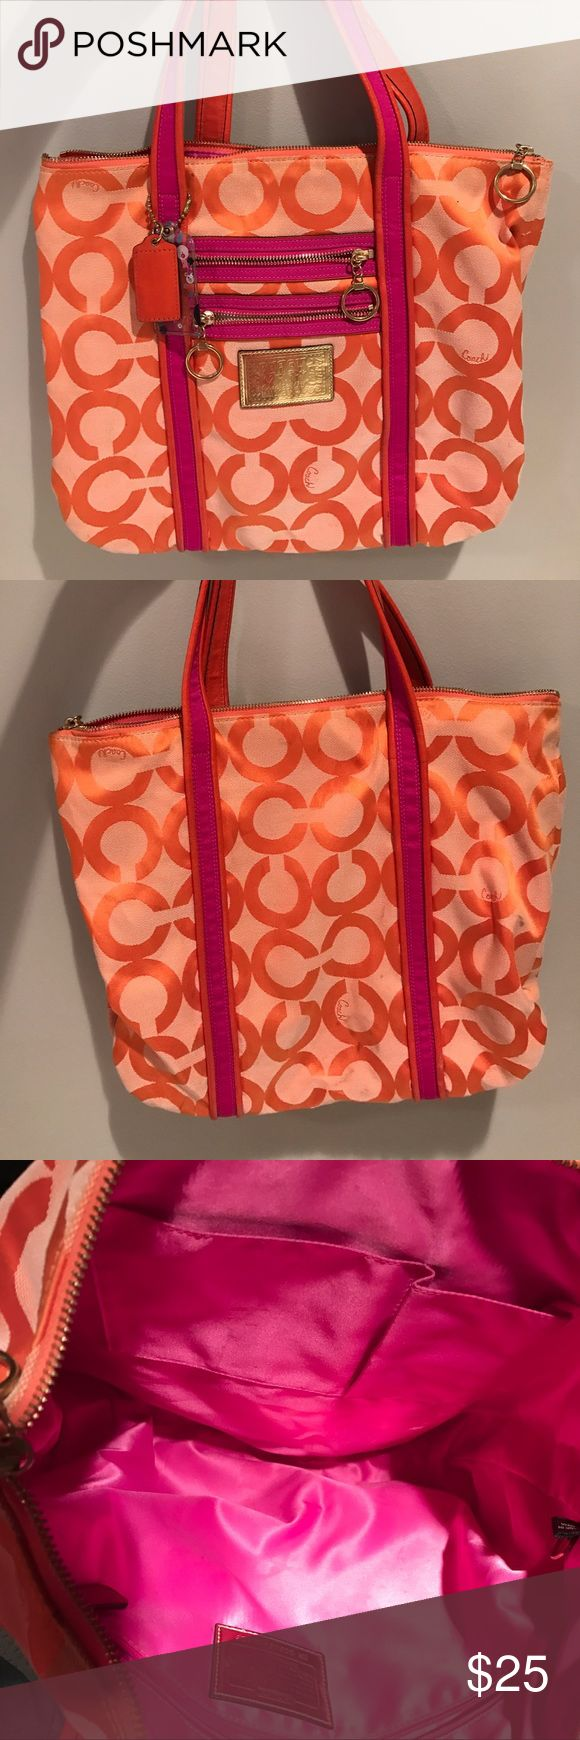 Coach tote bag, pink and orange, great condition Coach tote in pink and orange signature logo, three inside pockets. Outside is great condition save for slight smudges on the back, inside shows slight wear such as pen stains. Coach Bags Totes